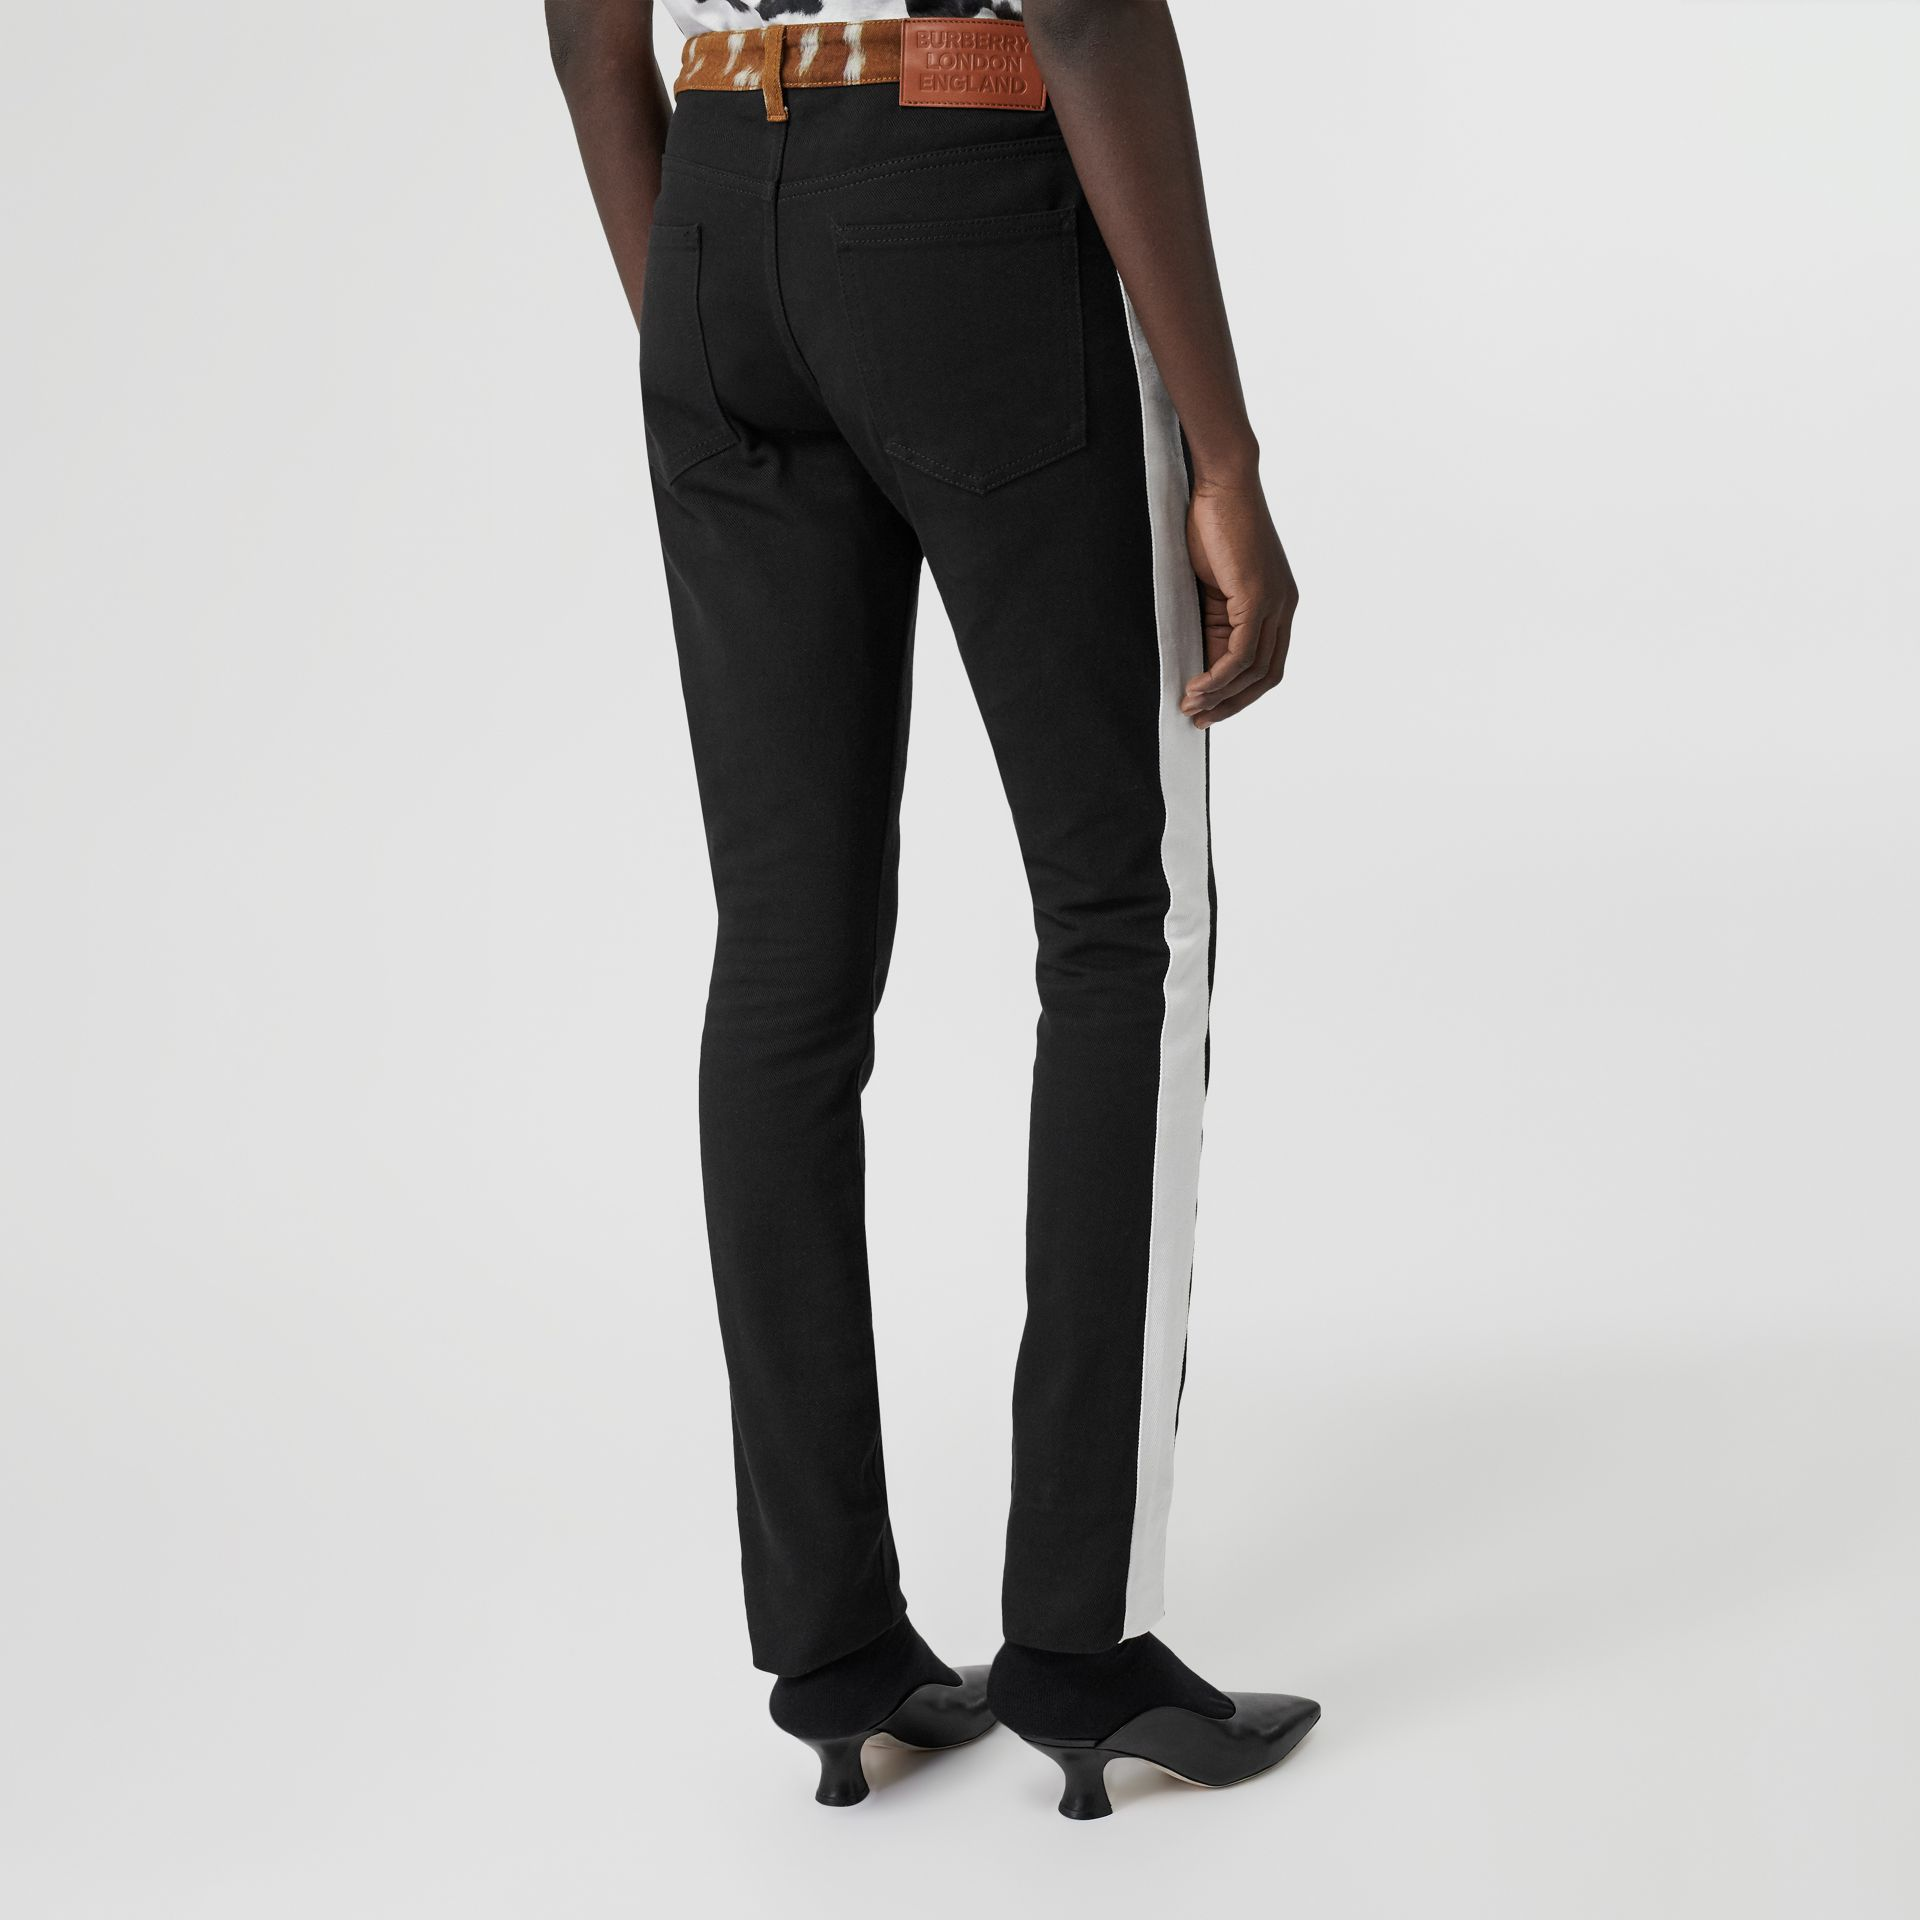 Straight Fit Deer Print Trim Japanese Denim Jeans in Black - Women | Burberry - gallery image 2